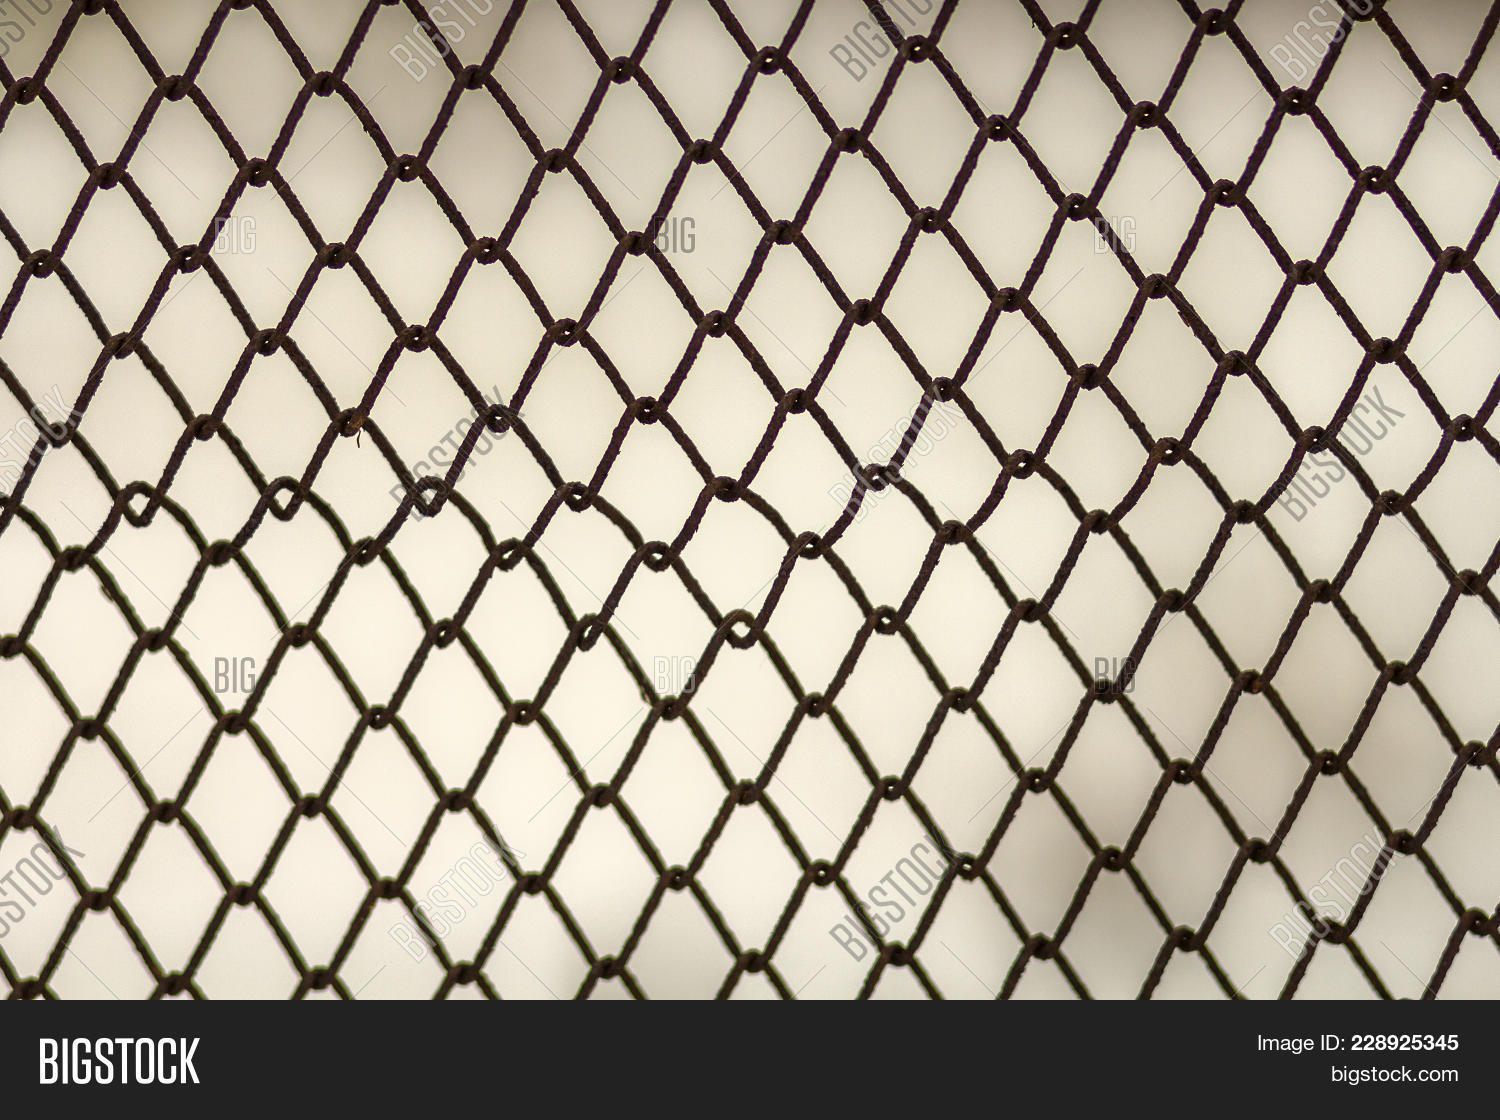 Background Texture Image & Photo (Free Trial)   Bigstock